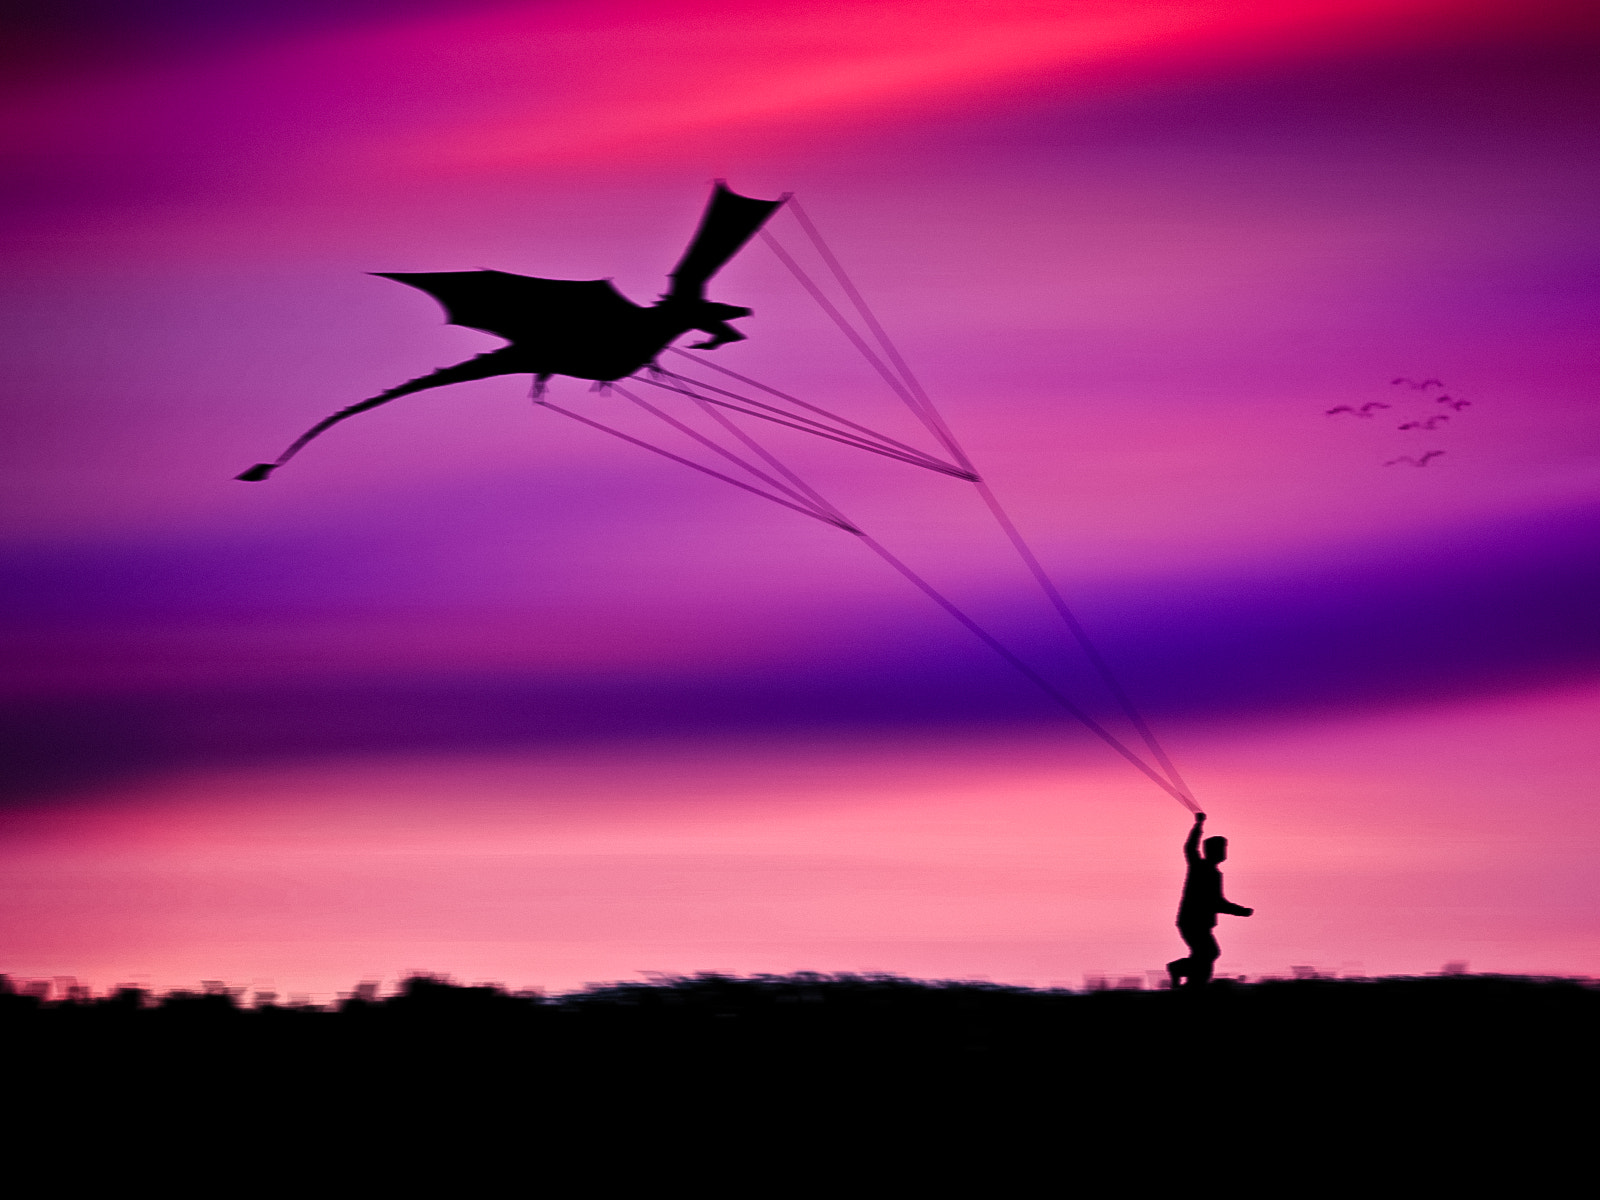 Photograph It's just a dragon kite. by mojaa neddo on 500px